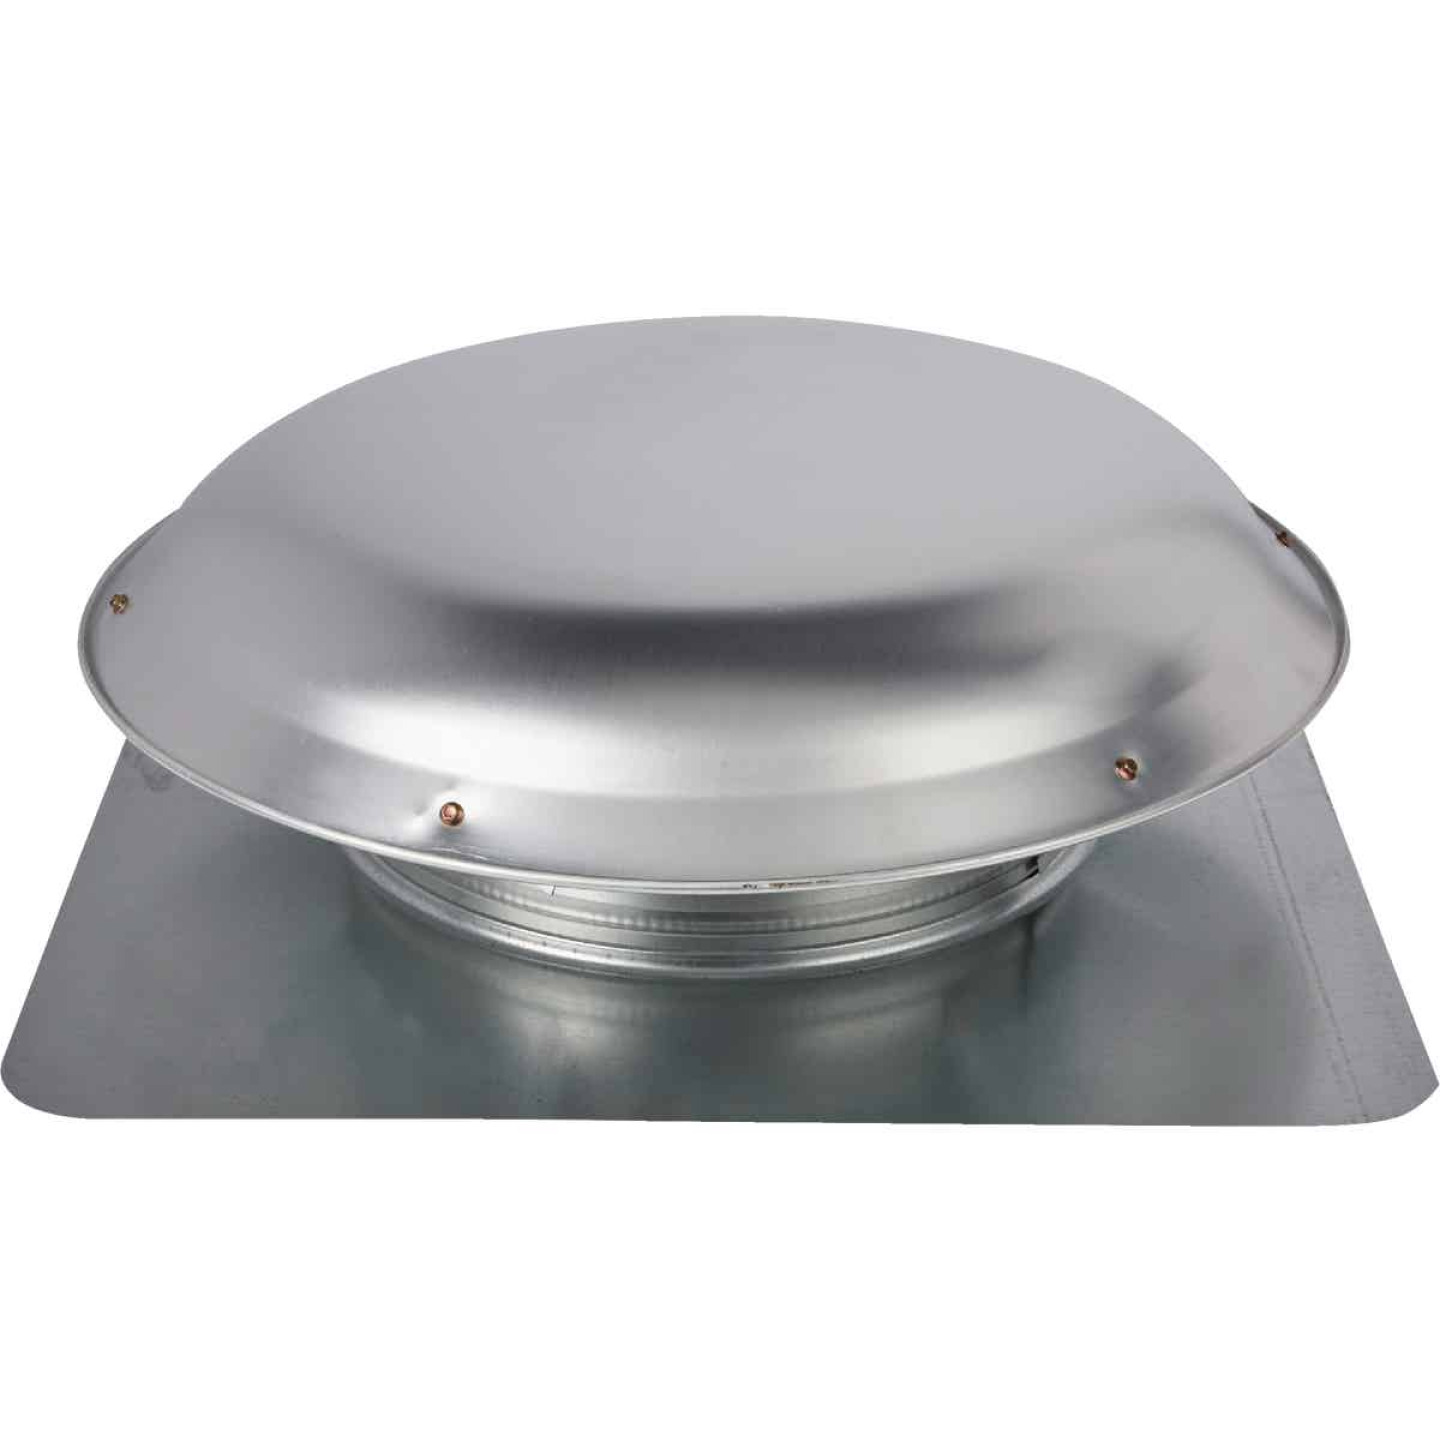 Ventamatic 1400 Aluminum Power Roof Mount Attic Vent Mill Image 1